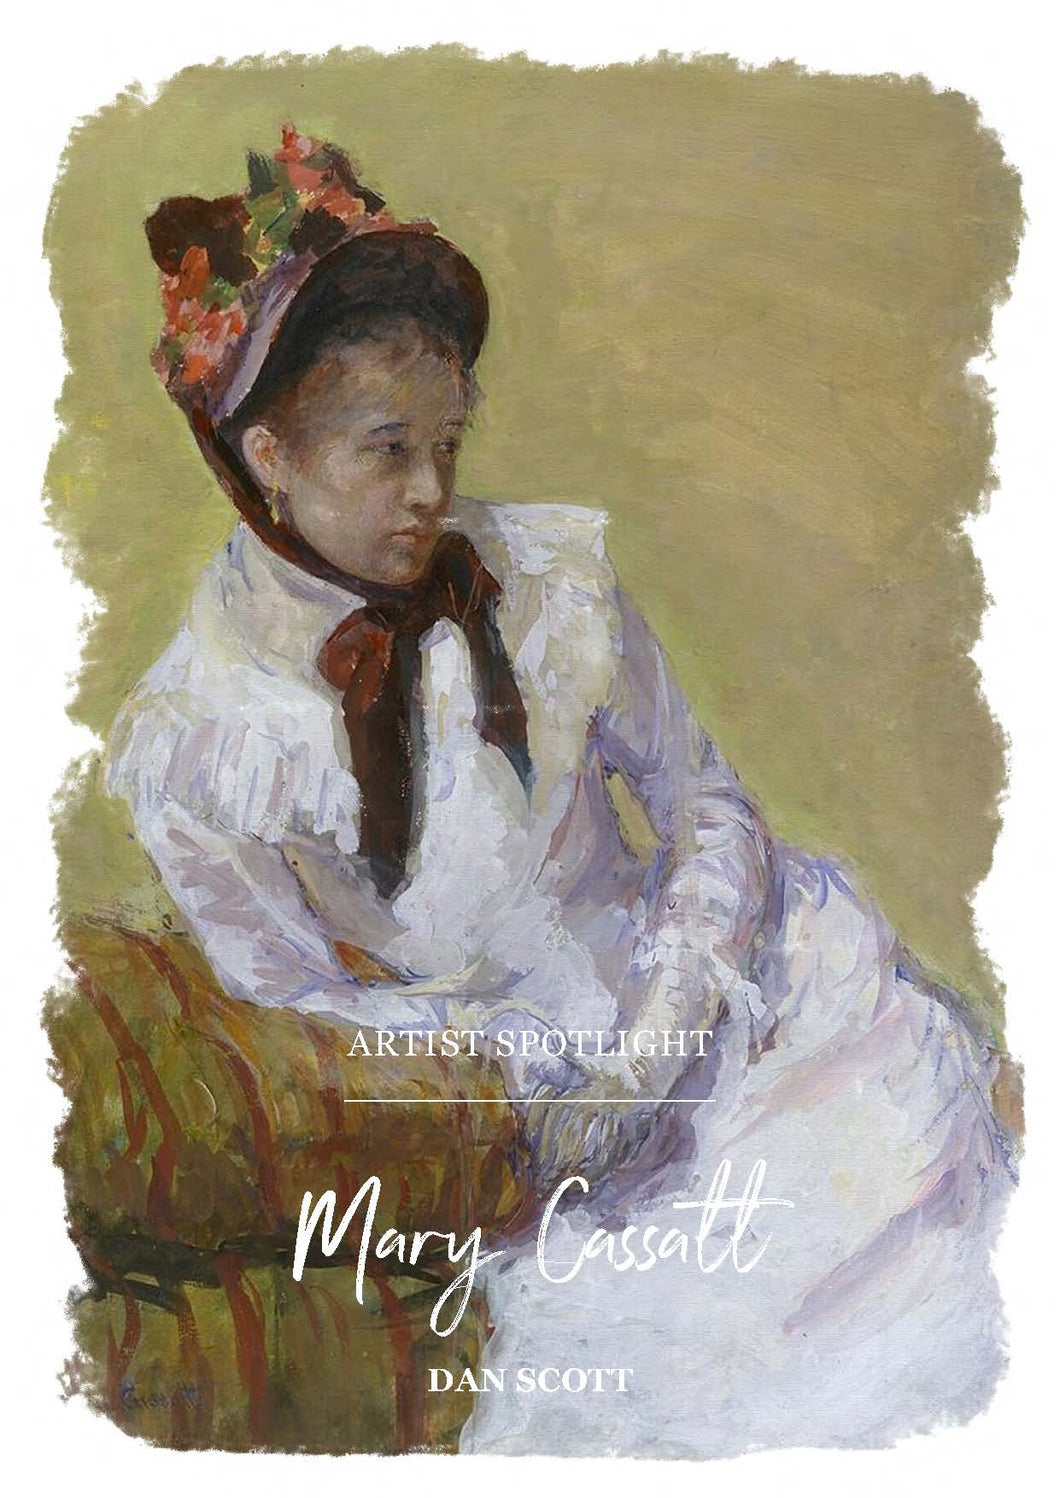 Artist Spotlight - Mary Cassatt